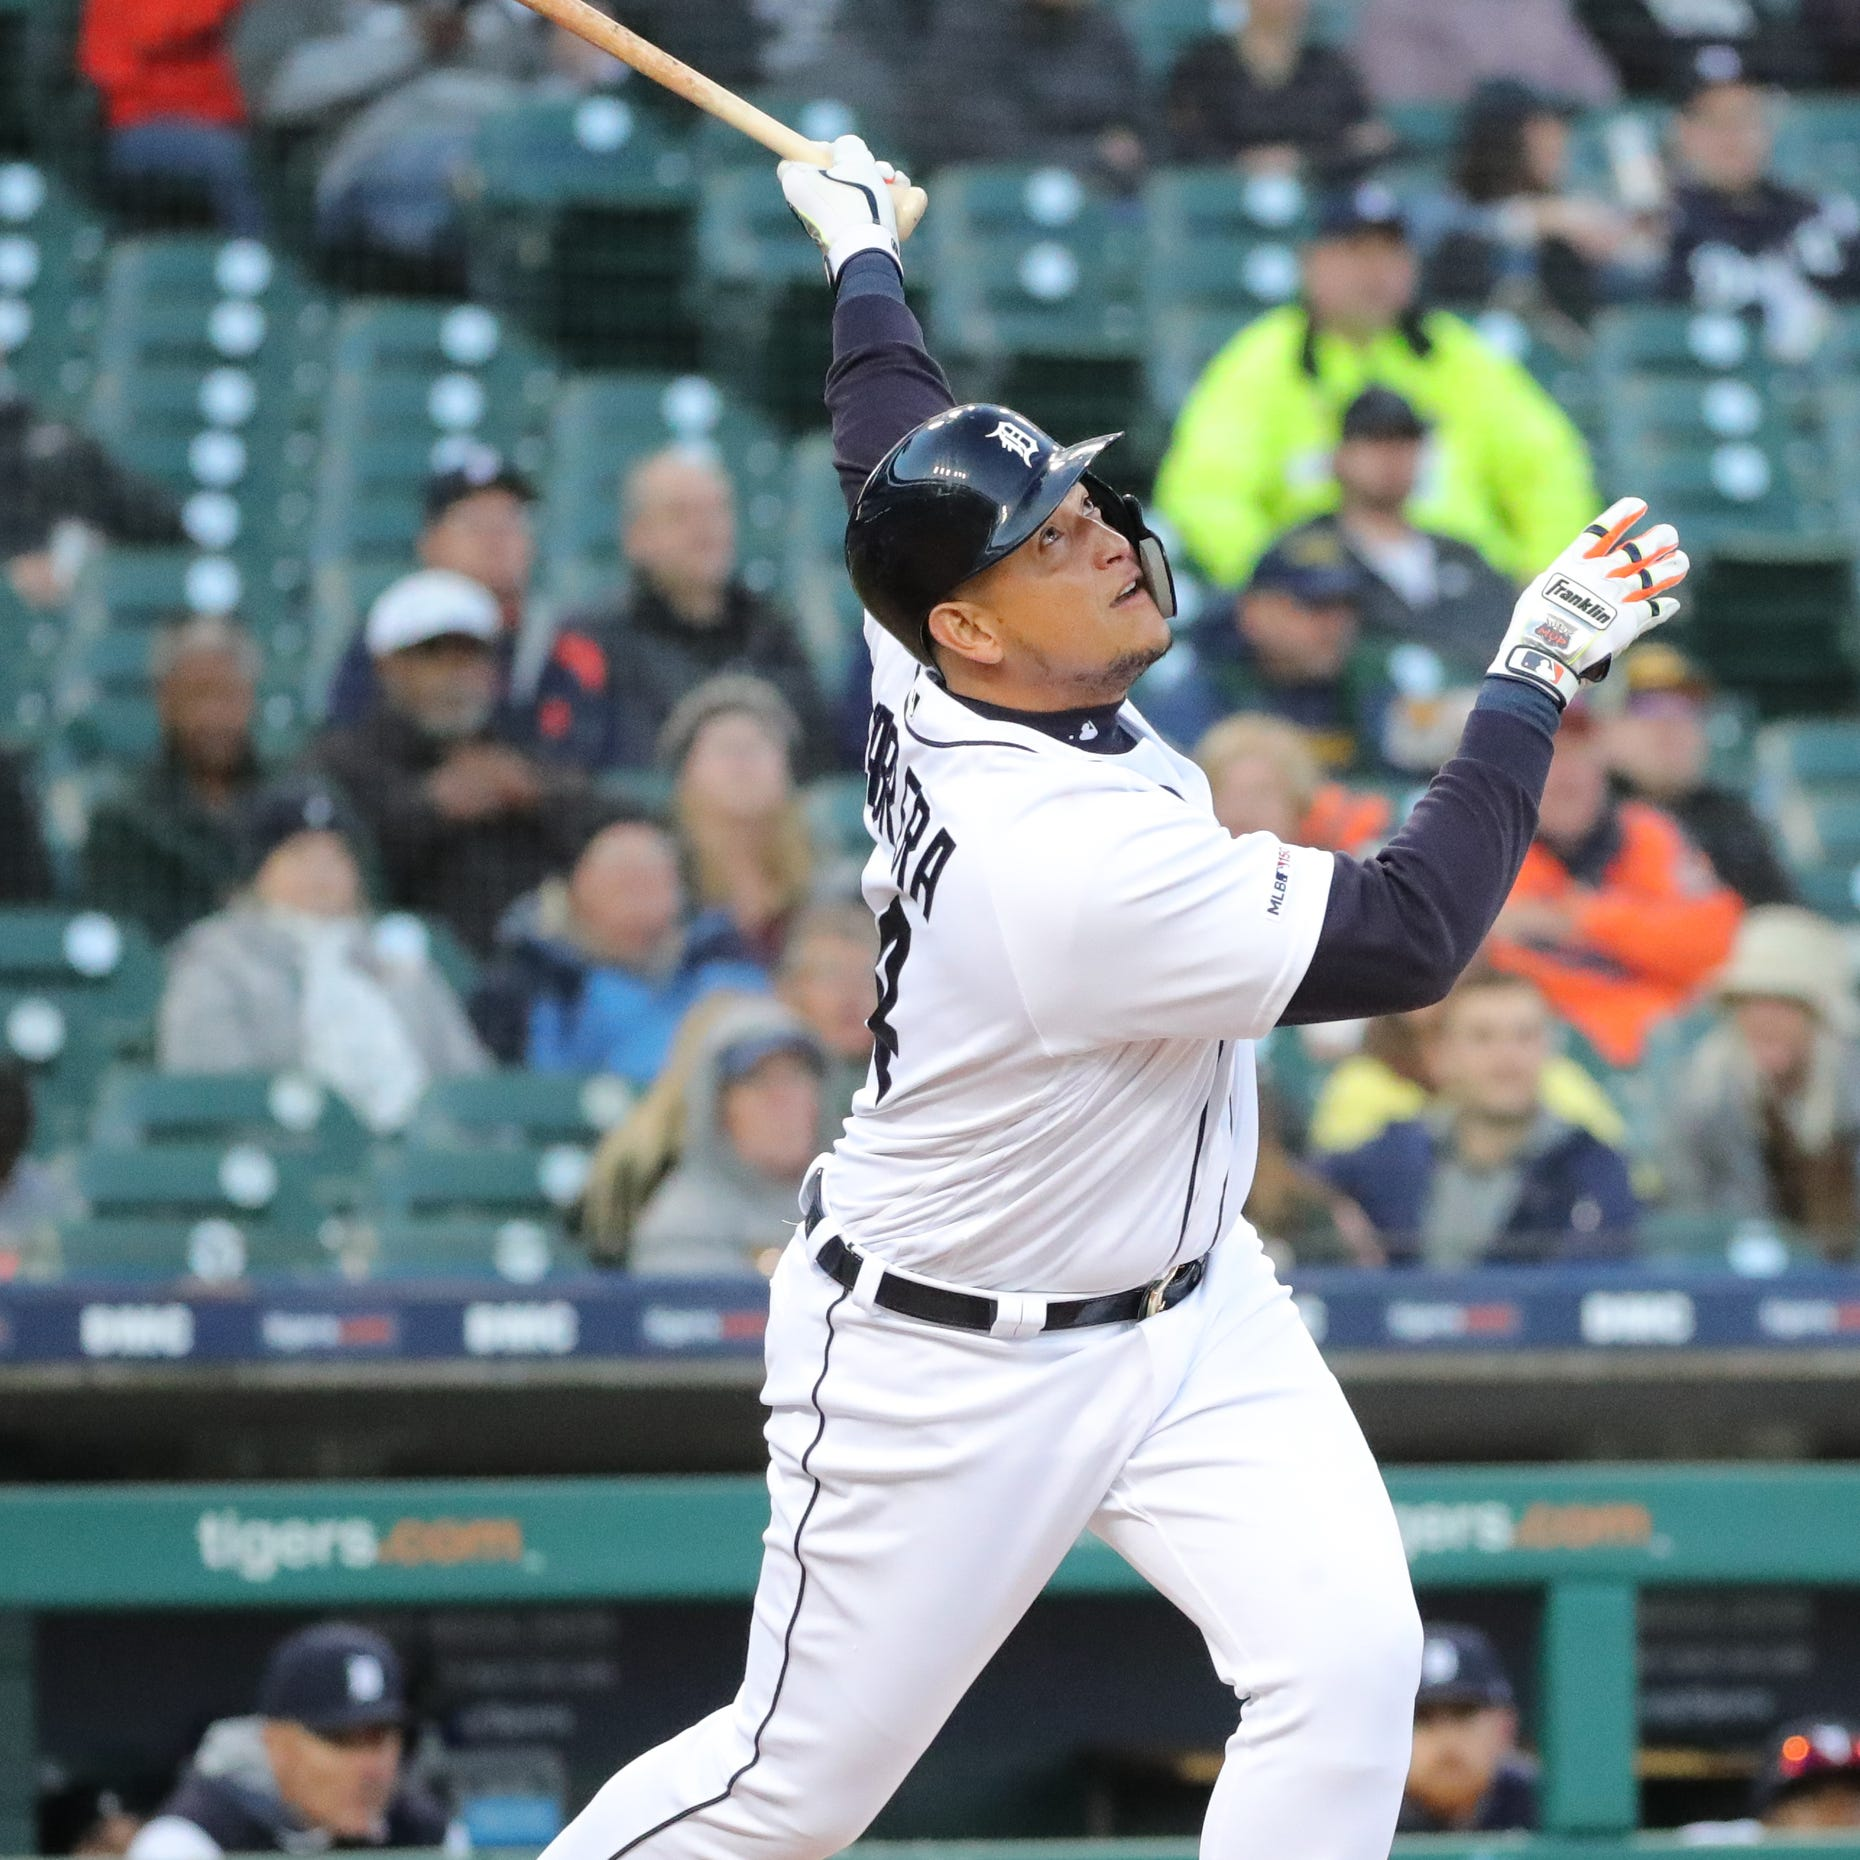 Detroit Tigers' Miguel Cabrera (knee) to miss facing Justin Verlander again